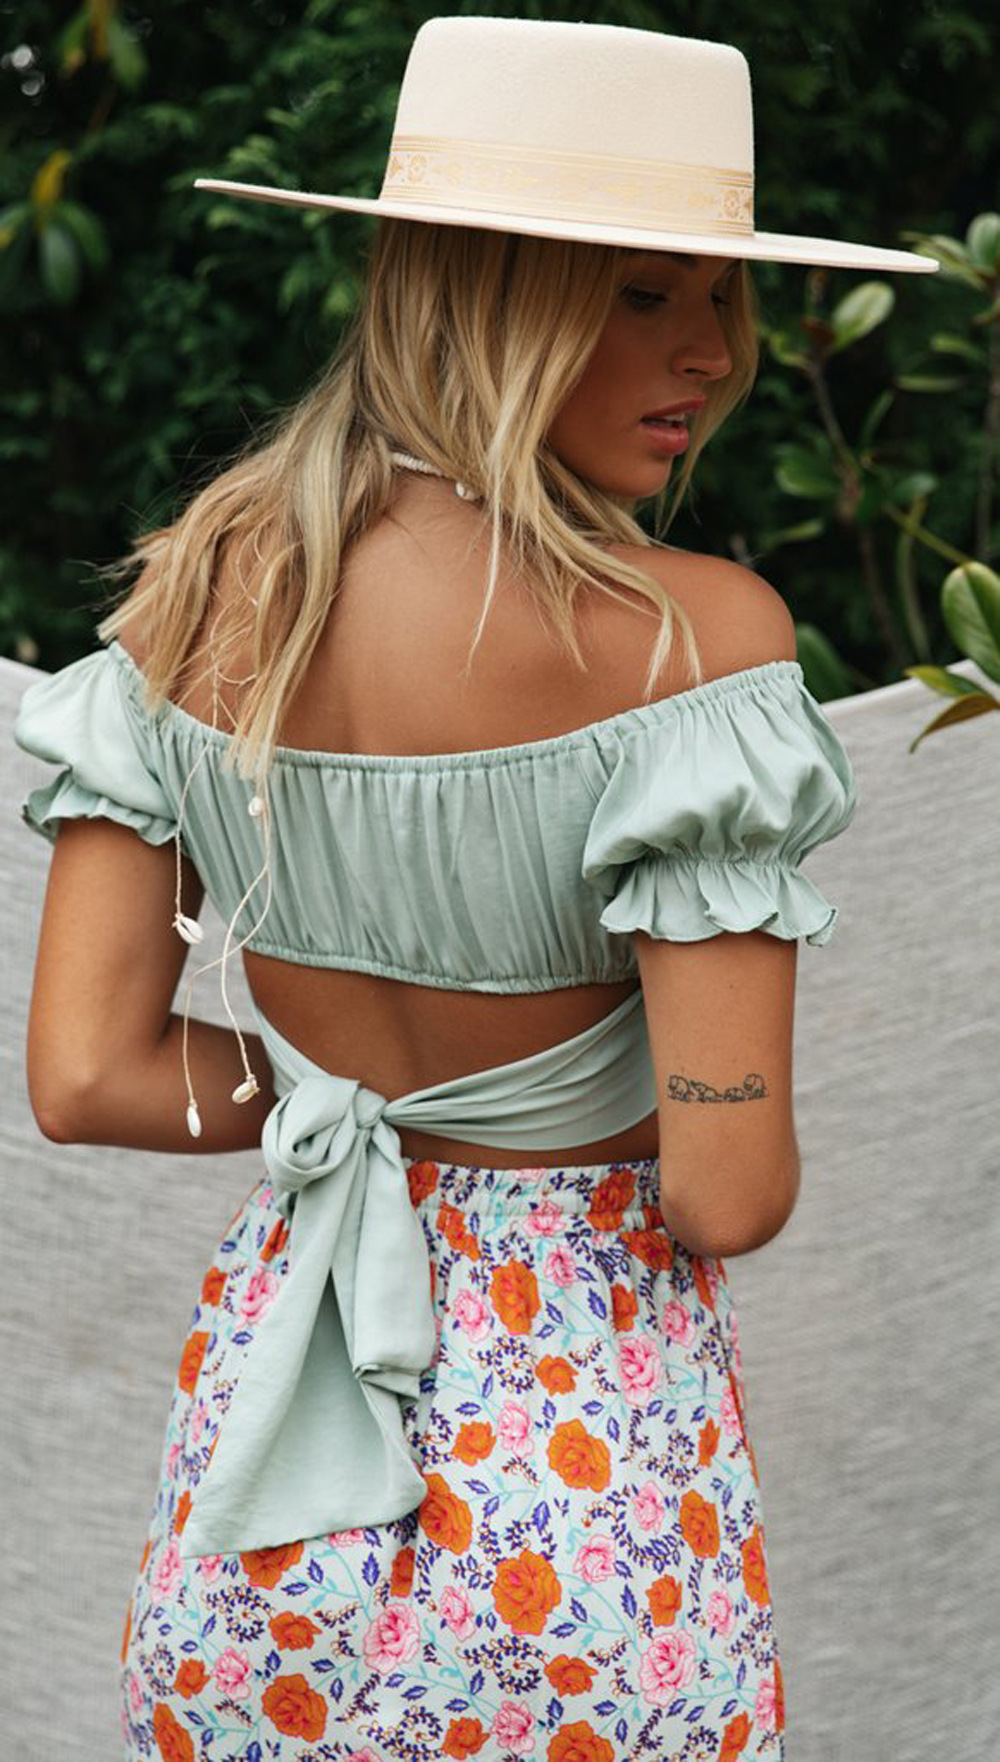 spring and summer new lantern short-sleeved square V-neck umbilical back tie pleated solid color crop top NSDF493